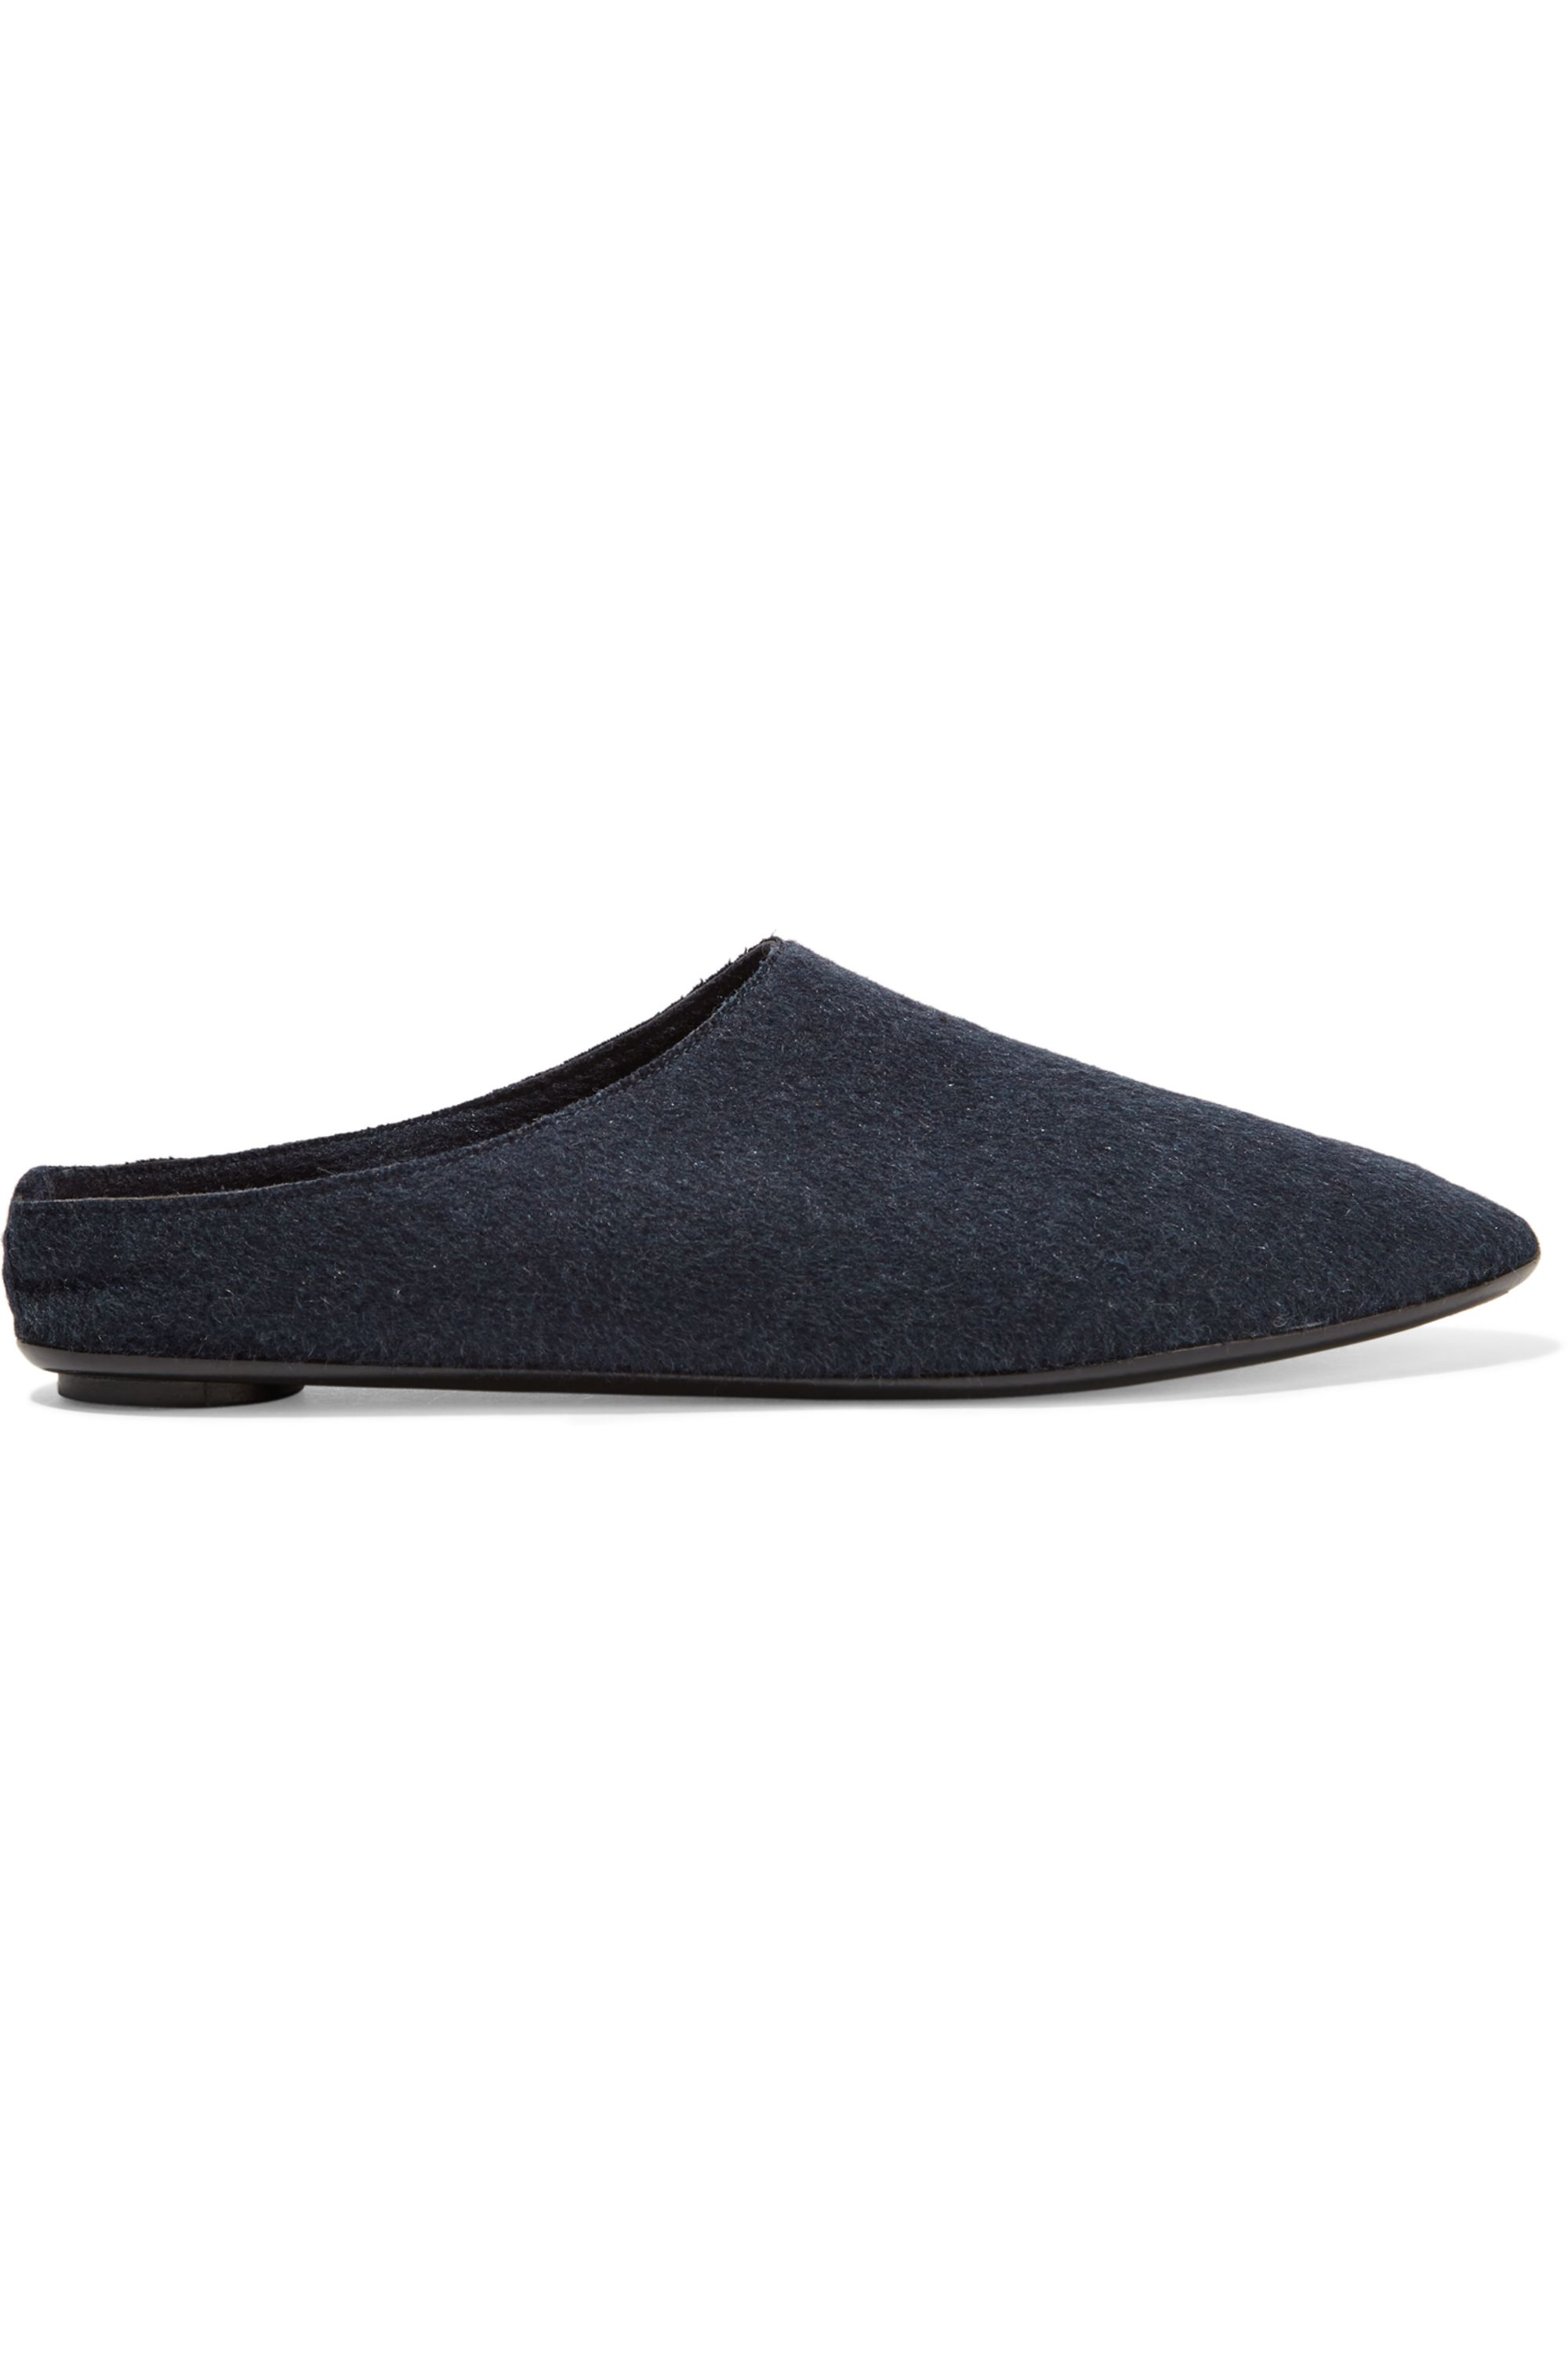 Midnight blue Bea cashmere slippers